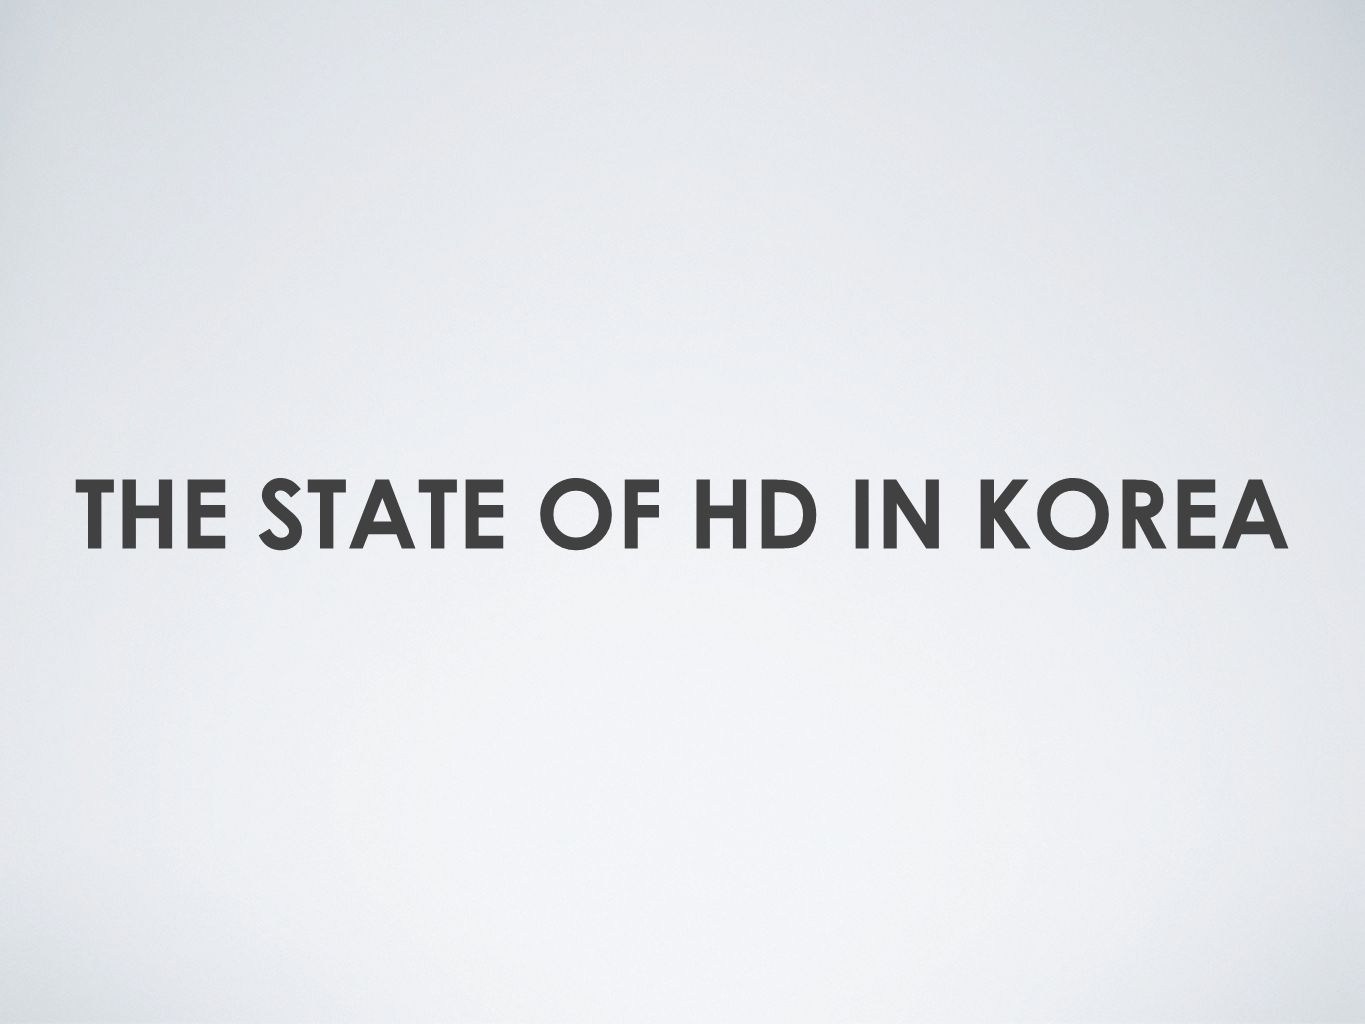 THE STATE OF HD IN KOREA